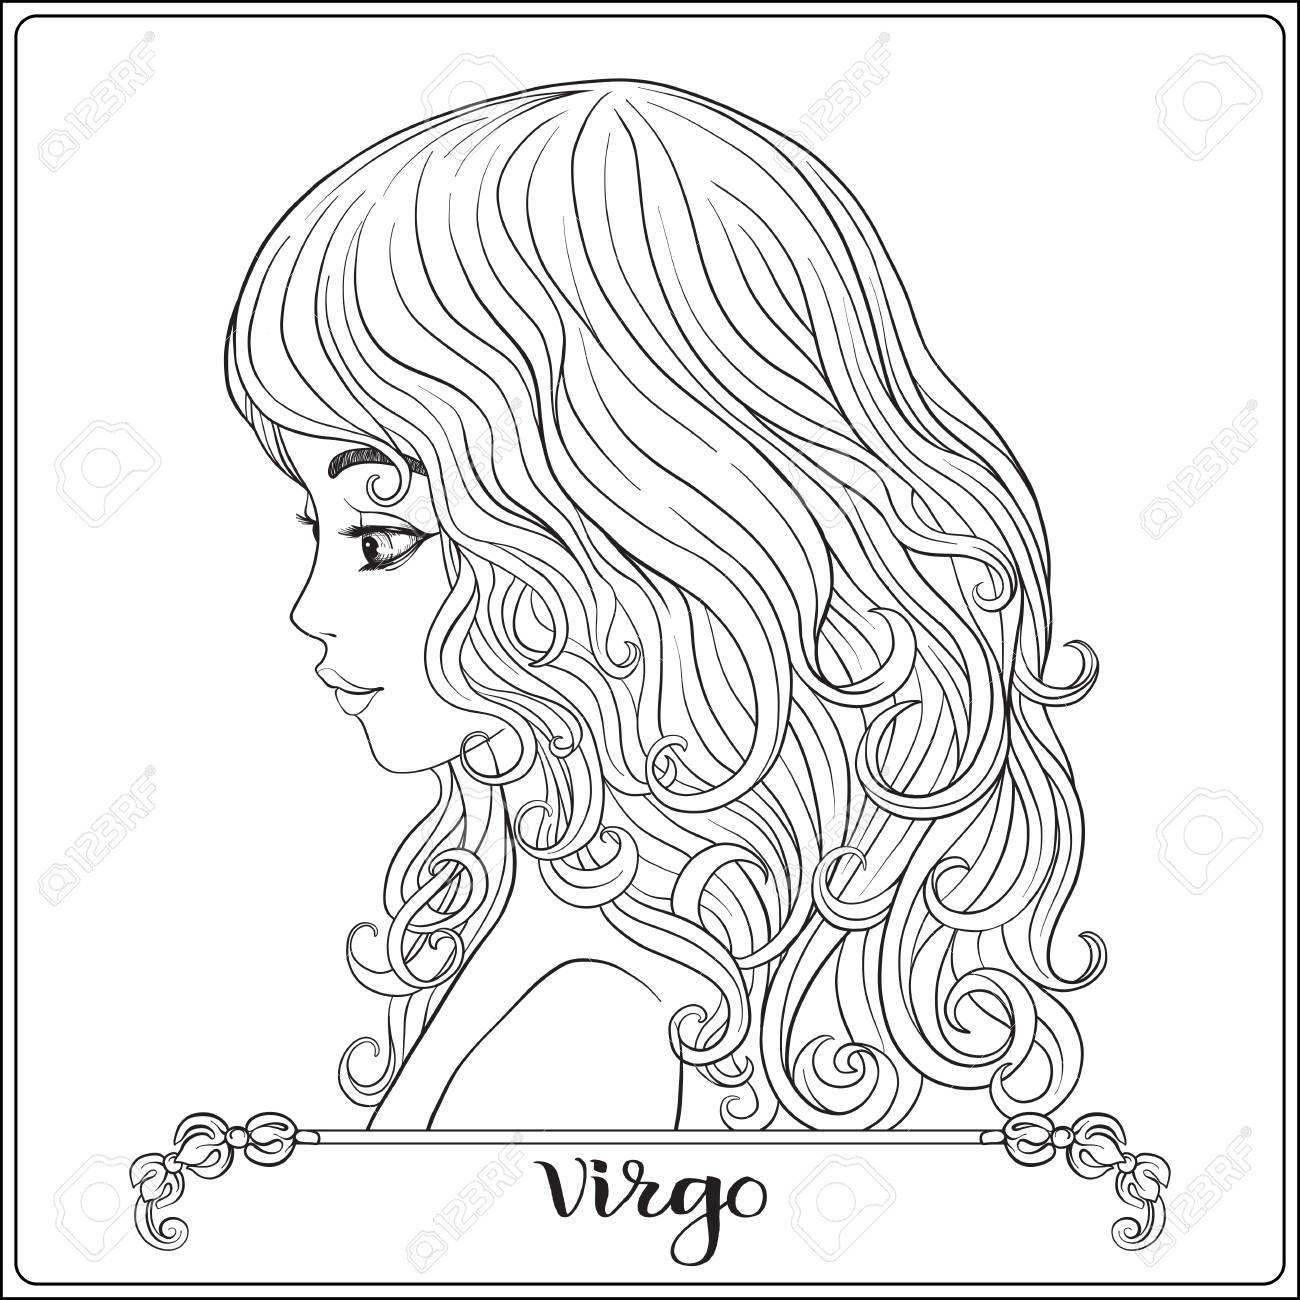 Virgo A Young Beautiful Girl In The Form Of One Of The Signs